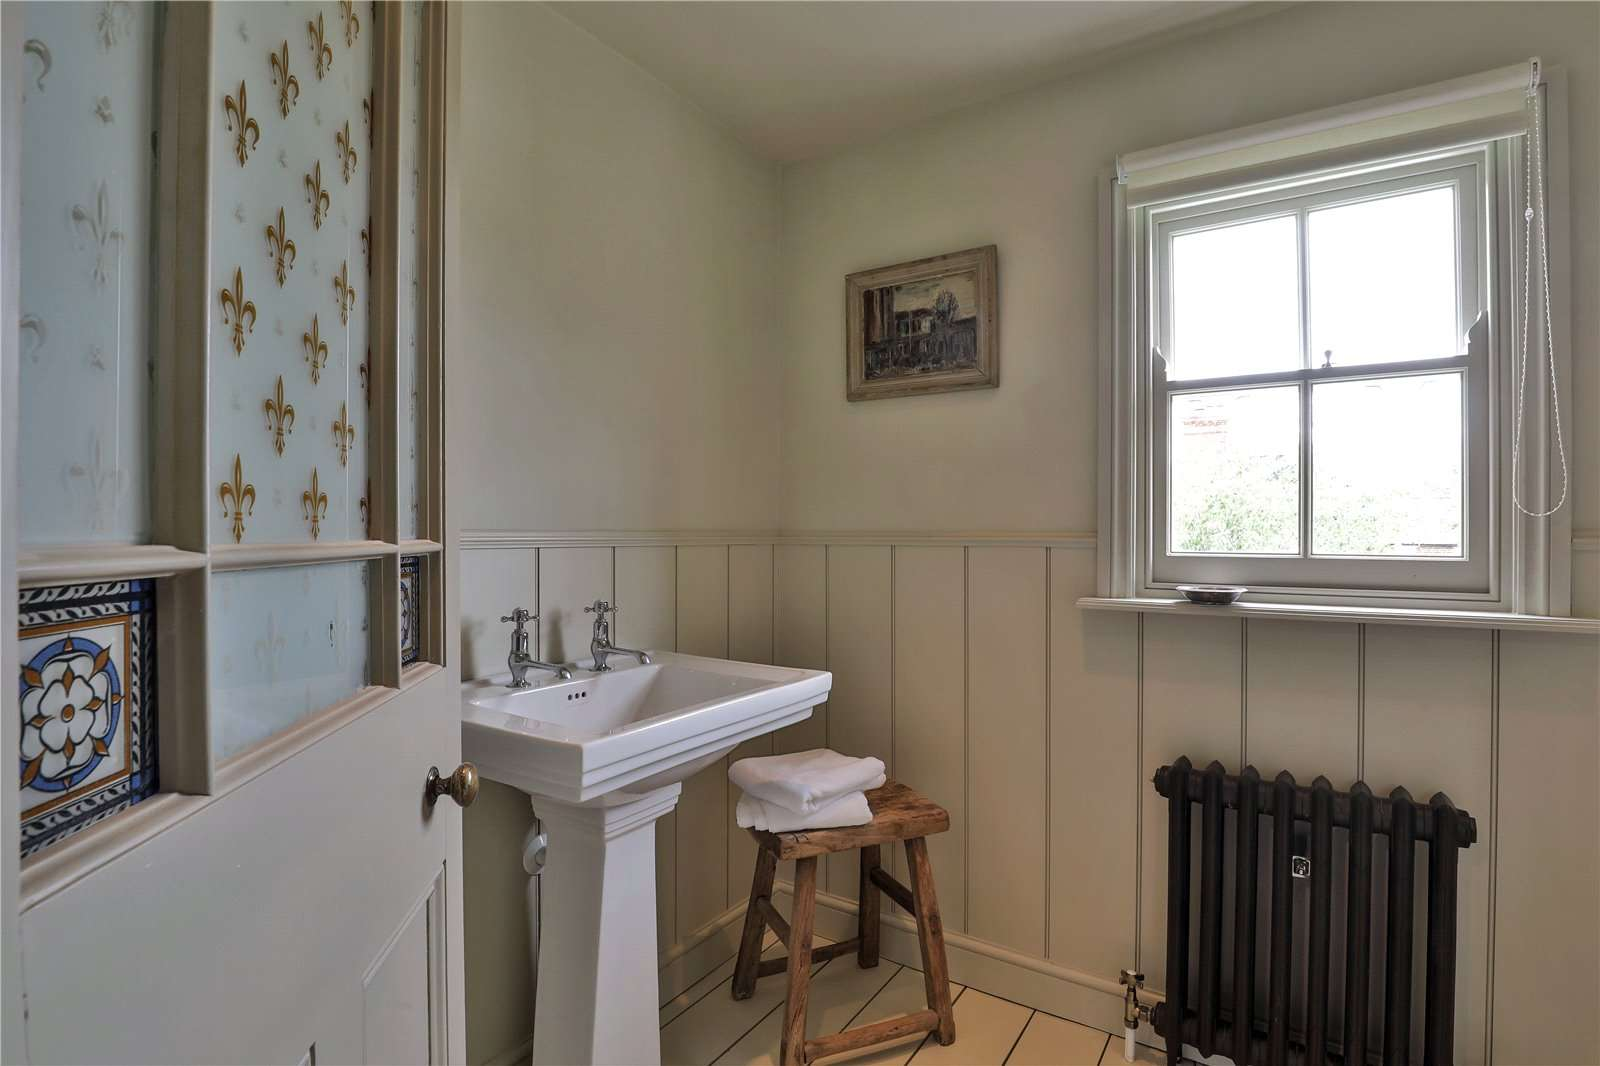 An elegantly-proportioned Victorian house on Woodstock Road in Oxford - Image Gallery 16 - Shower Room